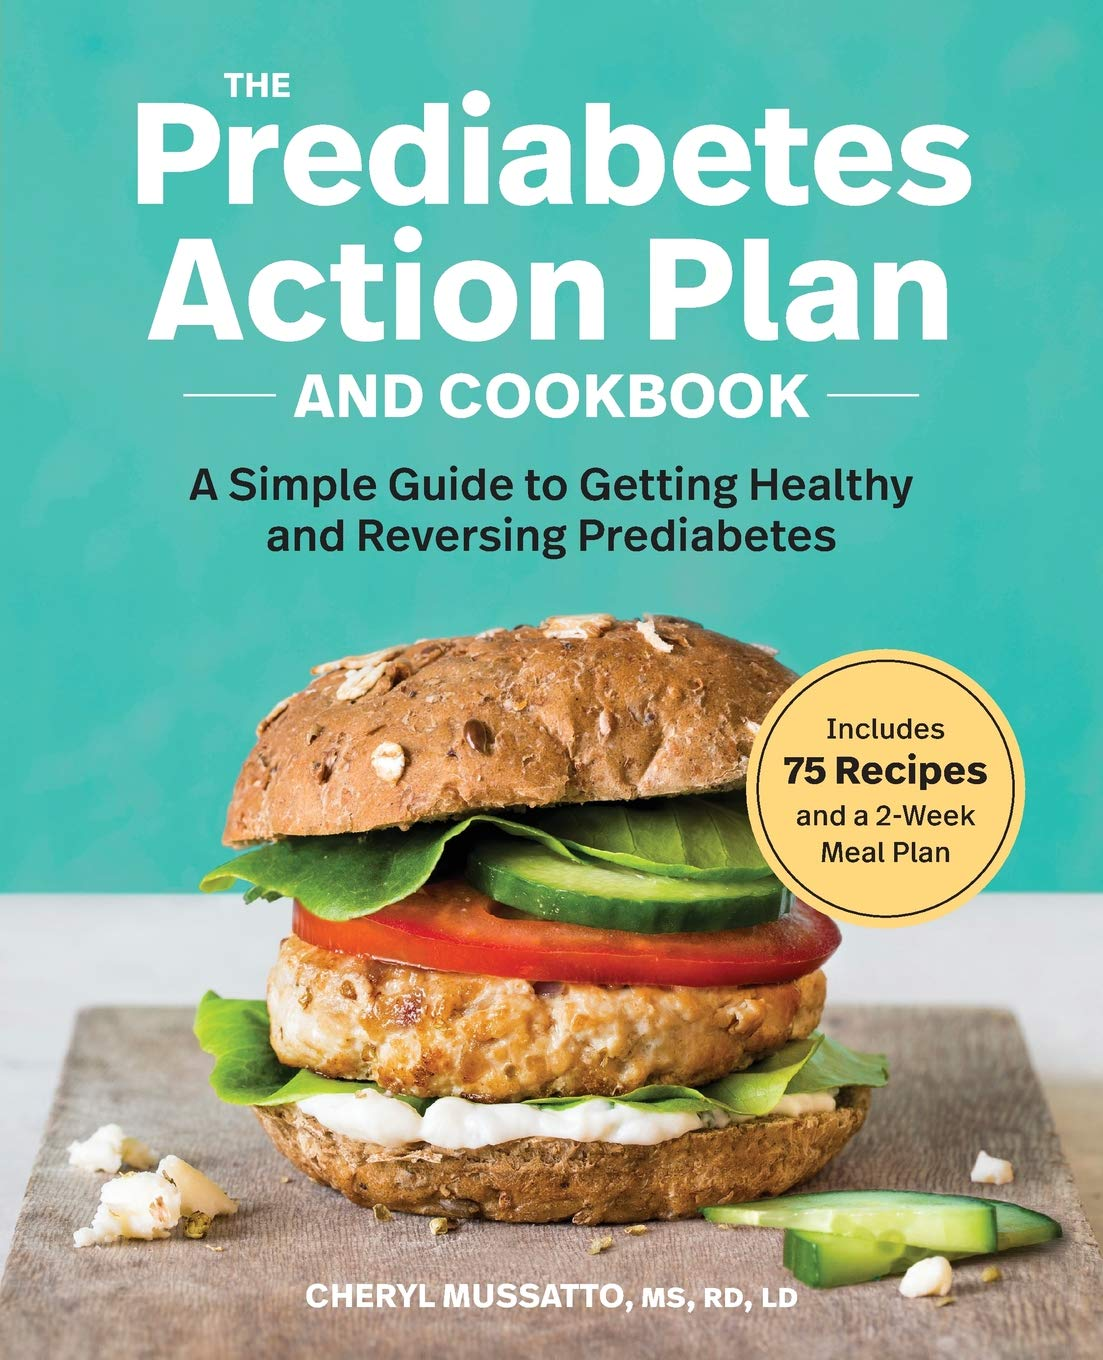 The Prediabetes Action Plan and Cookbook: A Simple Guide to Getting Healthy and Reversing Prediabetes 1